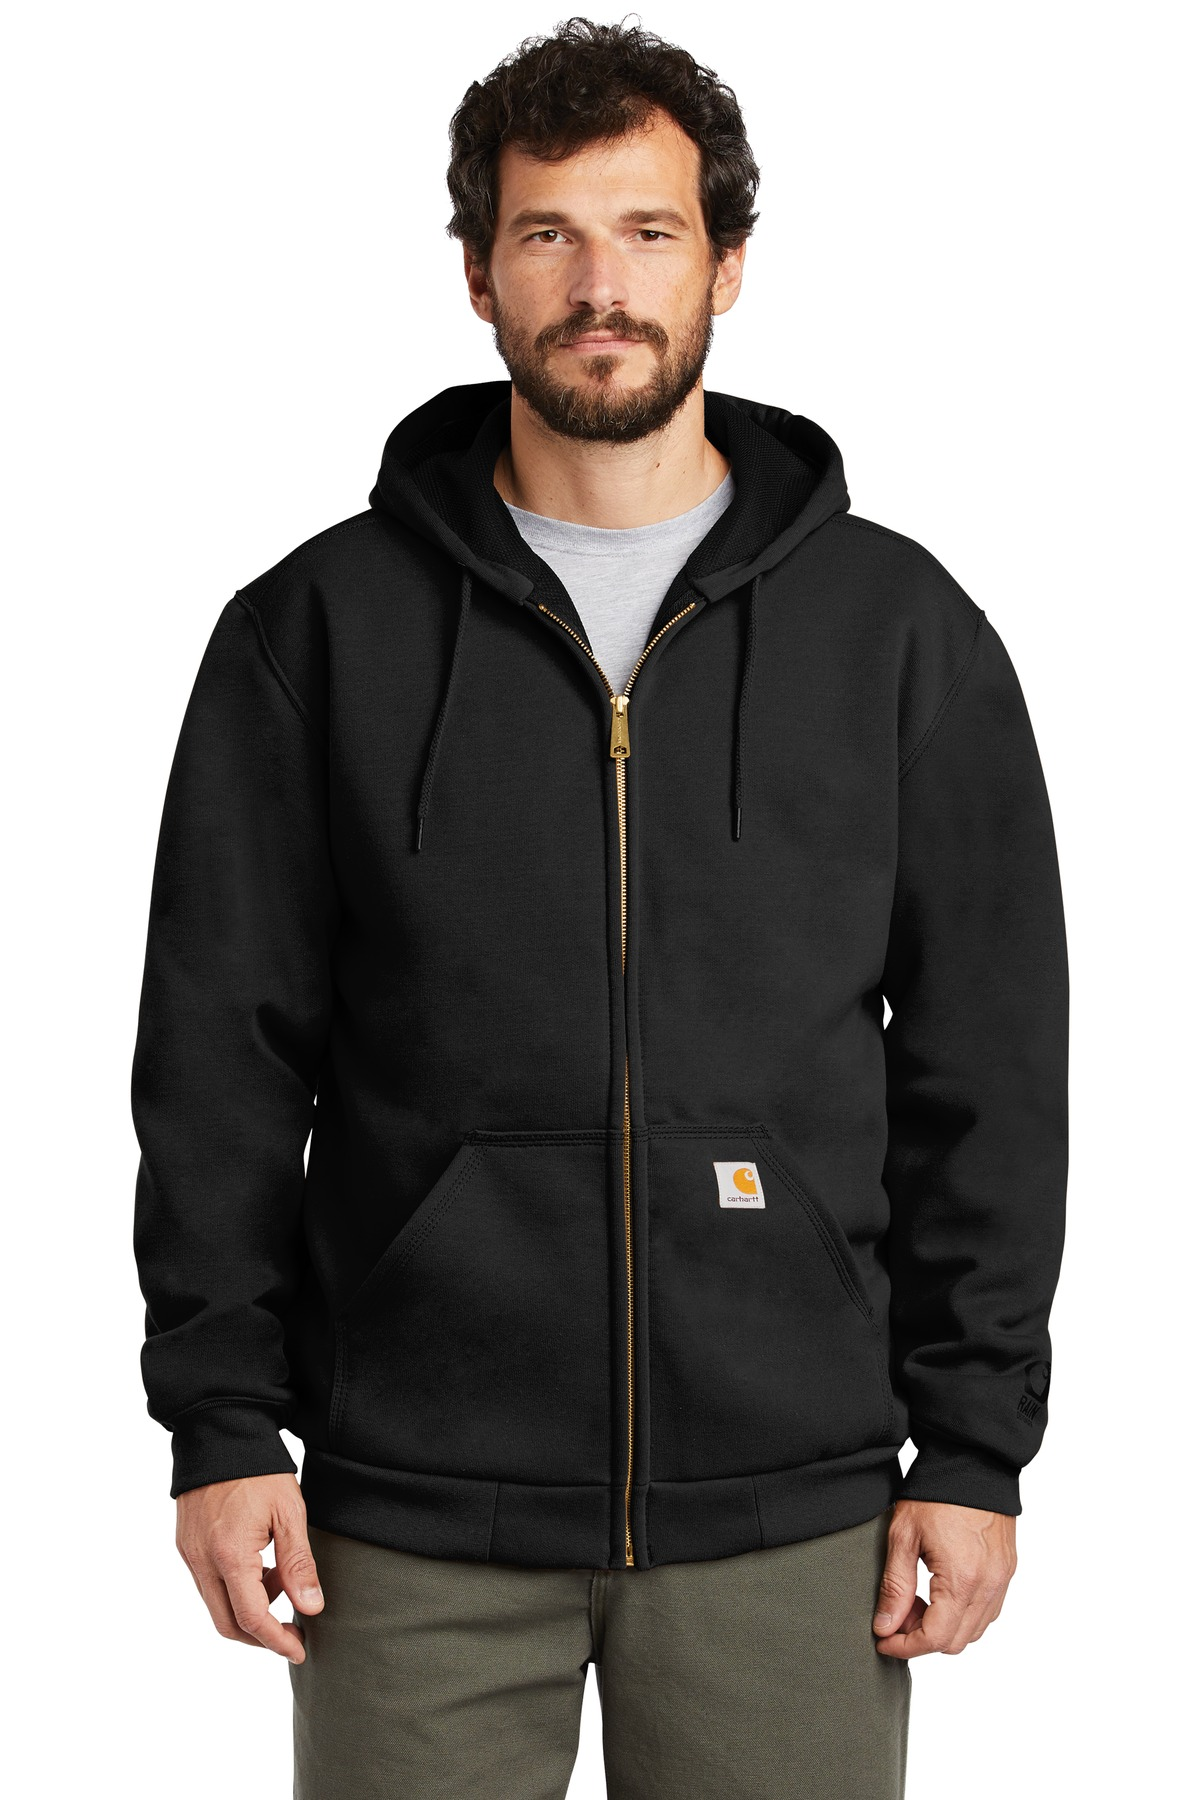 Carhartt  ®  Rain Defender  ®  Rutland Thermal-Lined Hooded Zip-Front Sweatshirt. CT100632 - Black